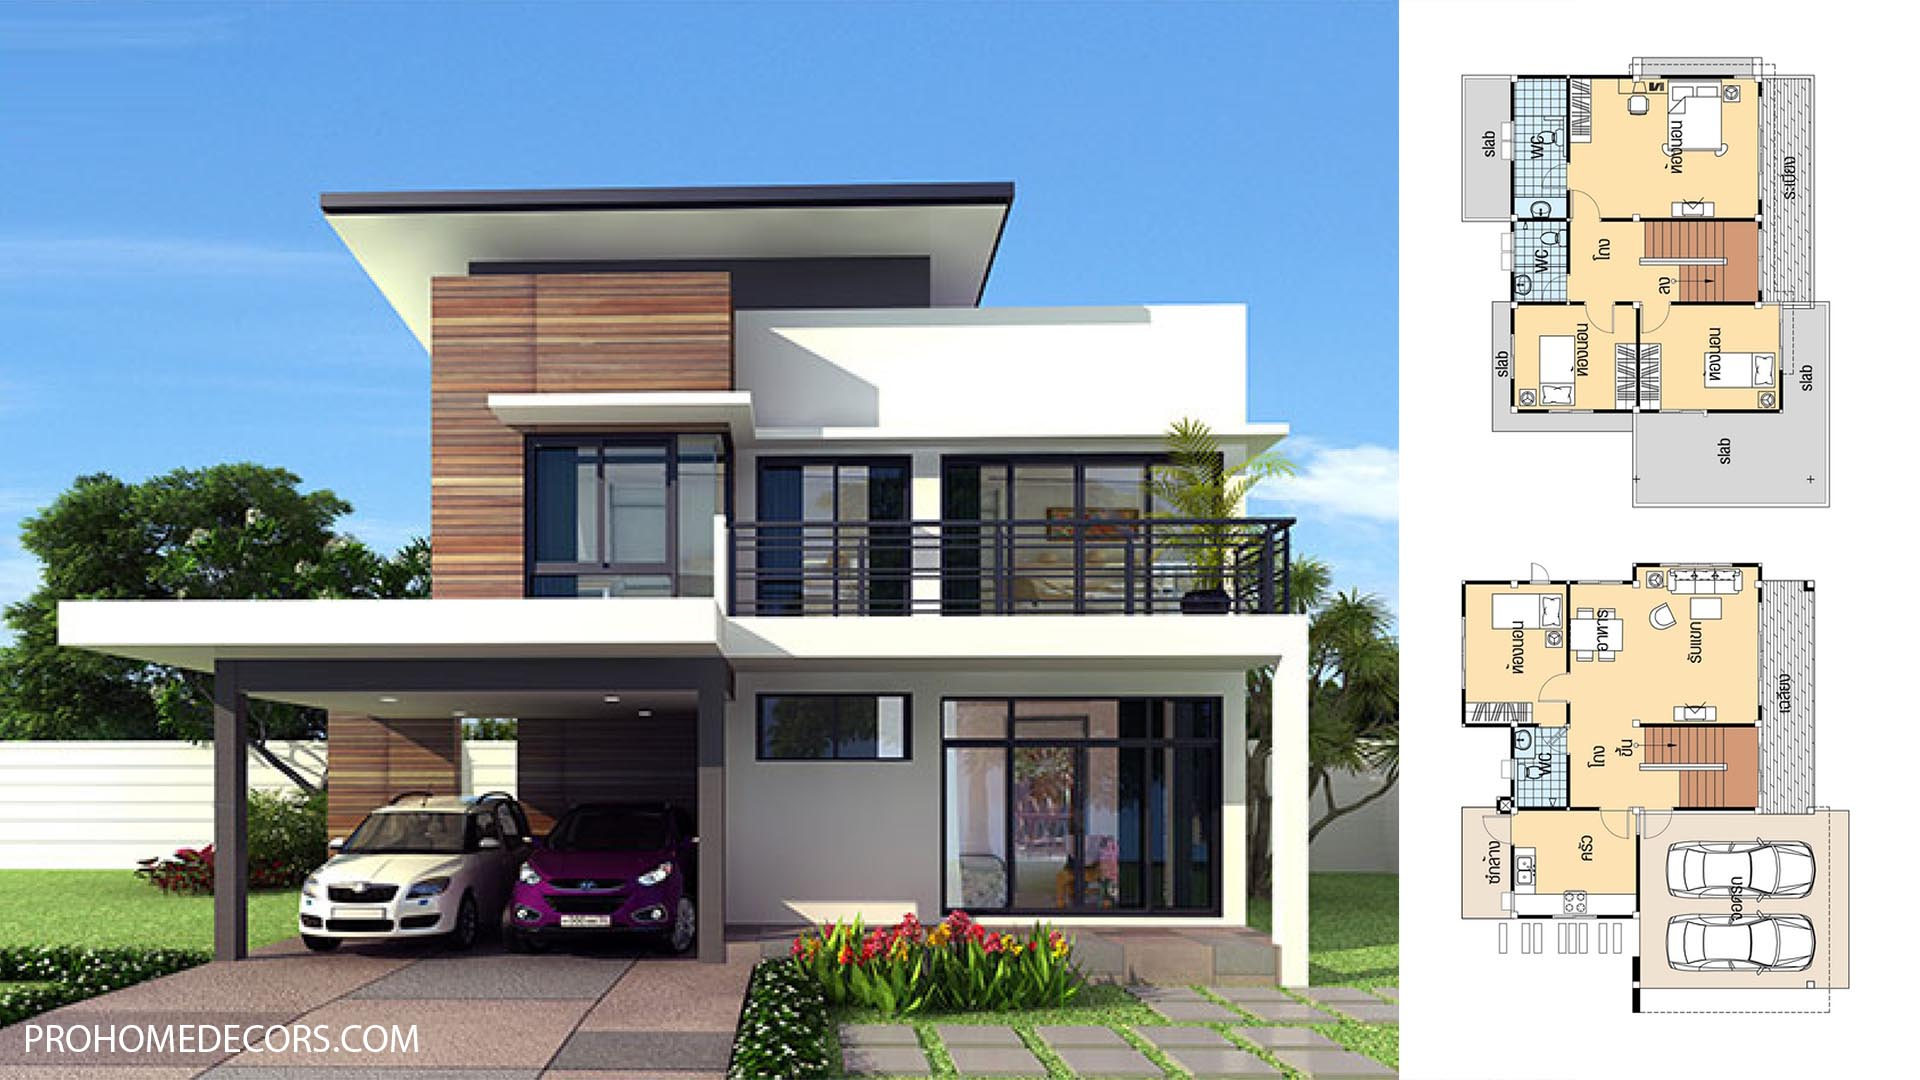 House Plans 11.5×9 with 4 Bedrooms